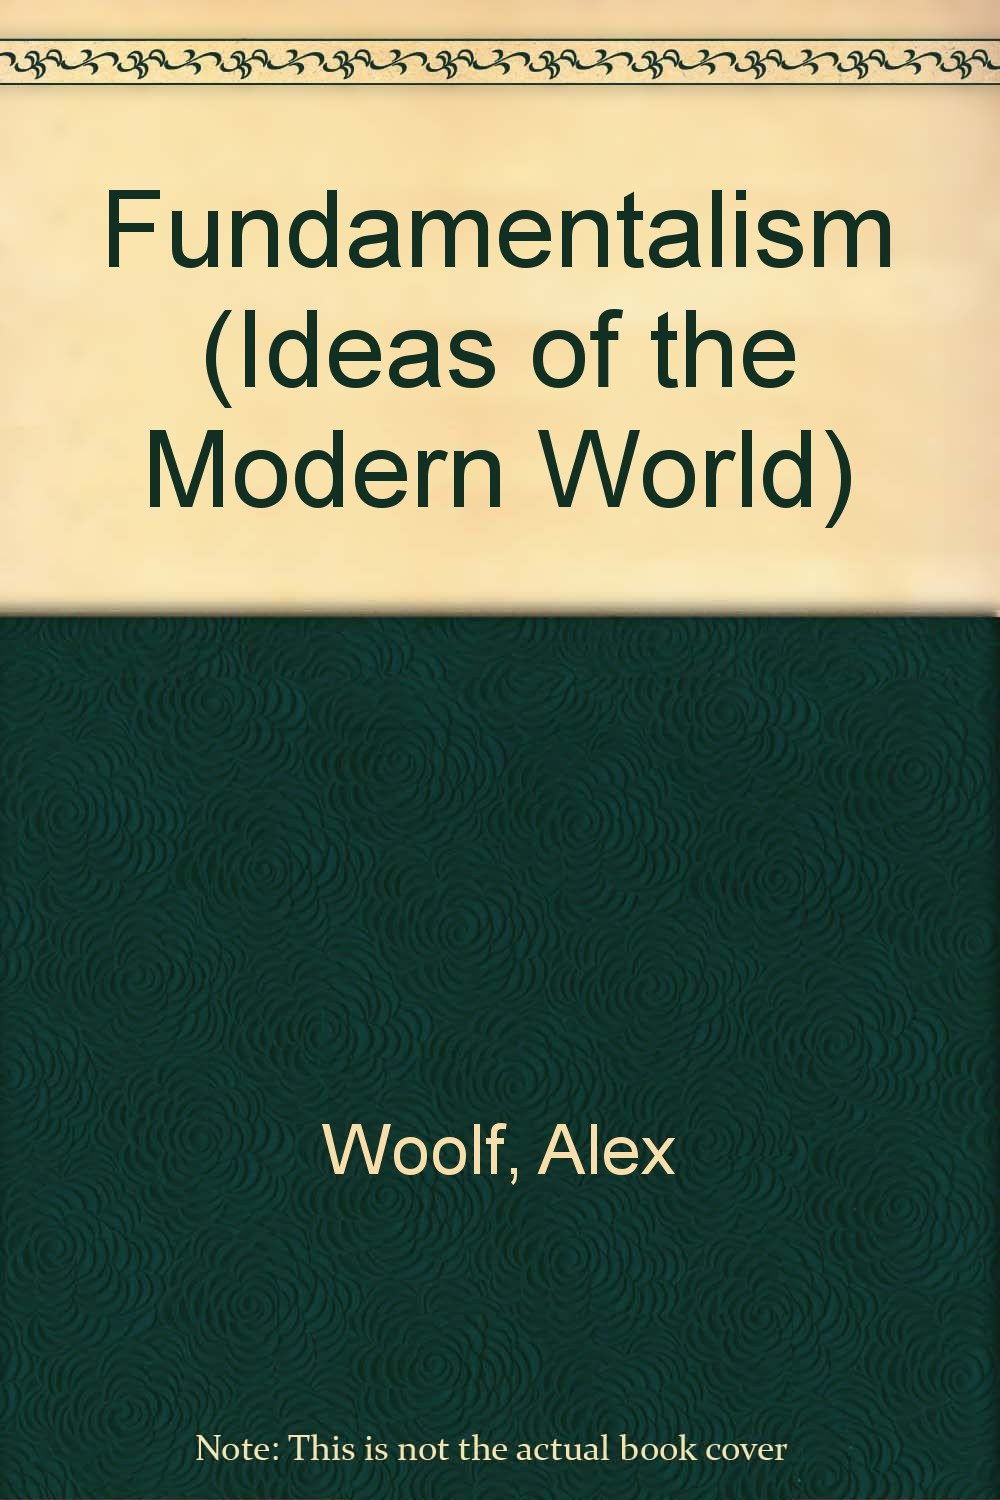 Fundamentalism (Ideas of the Modern World)